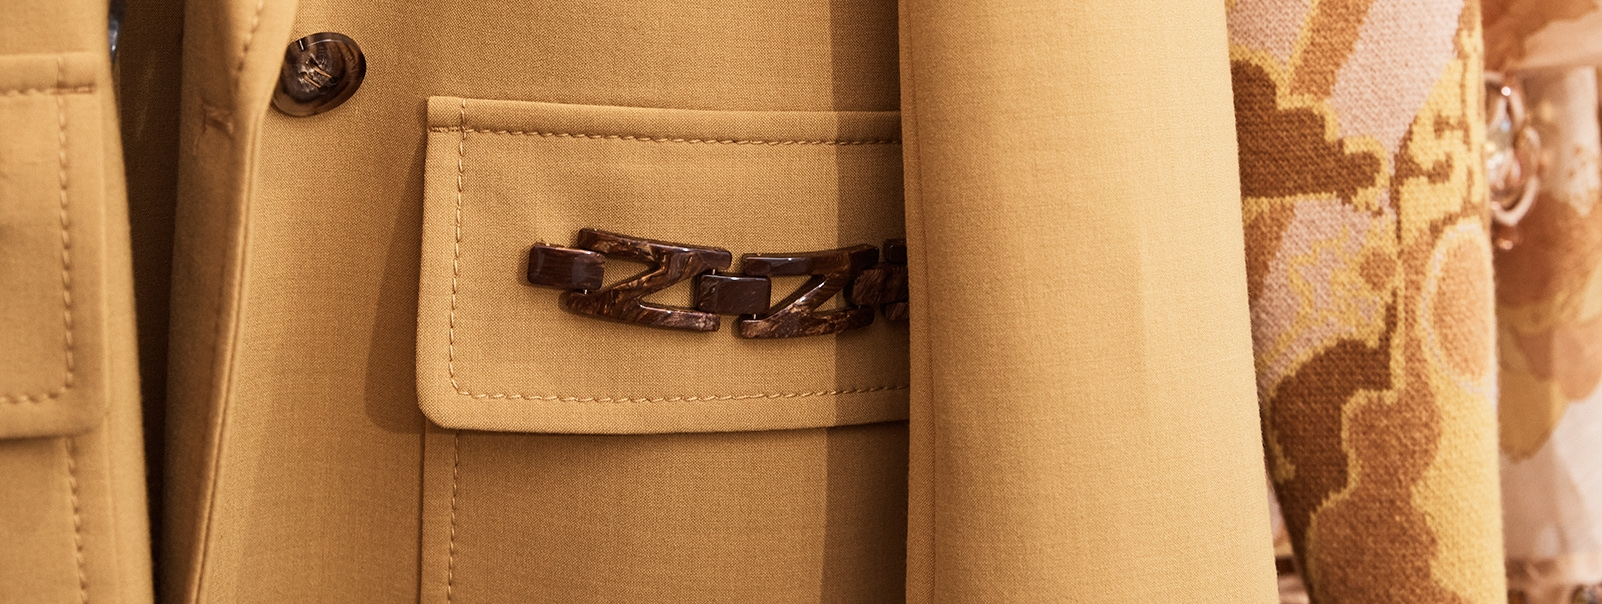 Suiting garment detail image of the Fall 2021 Runway collection